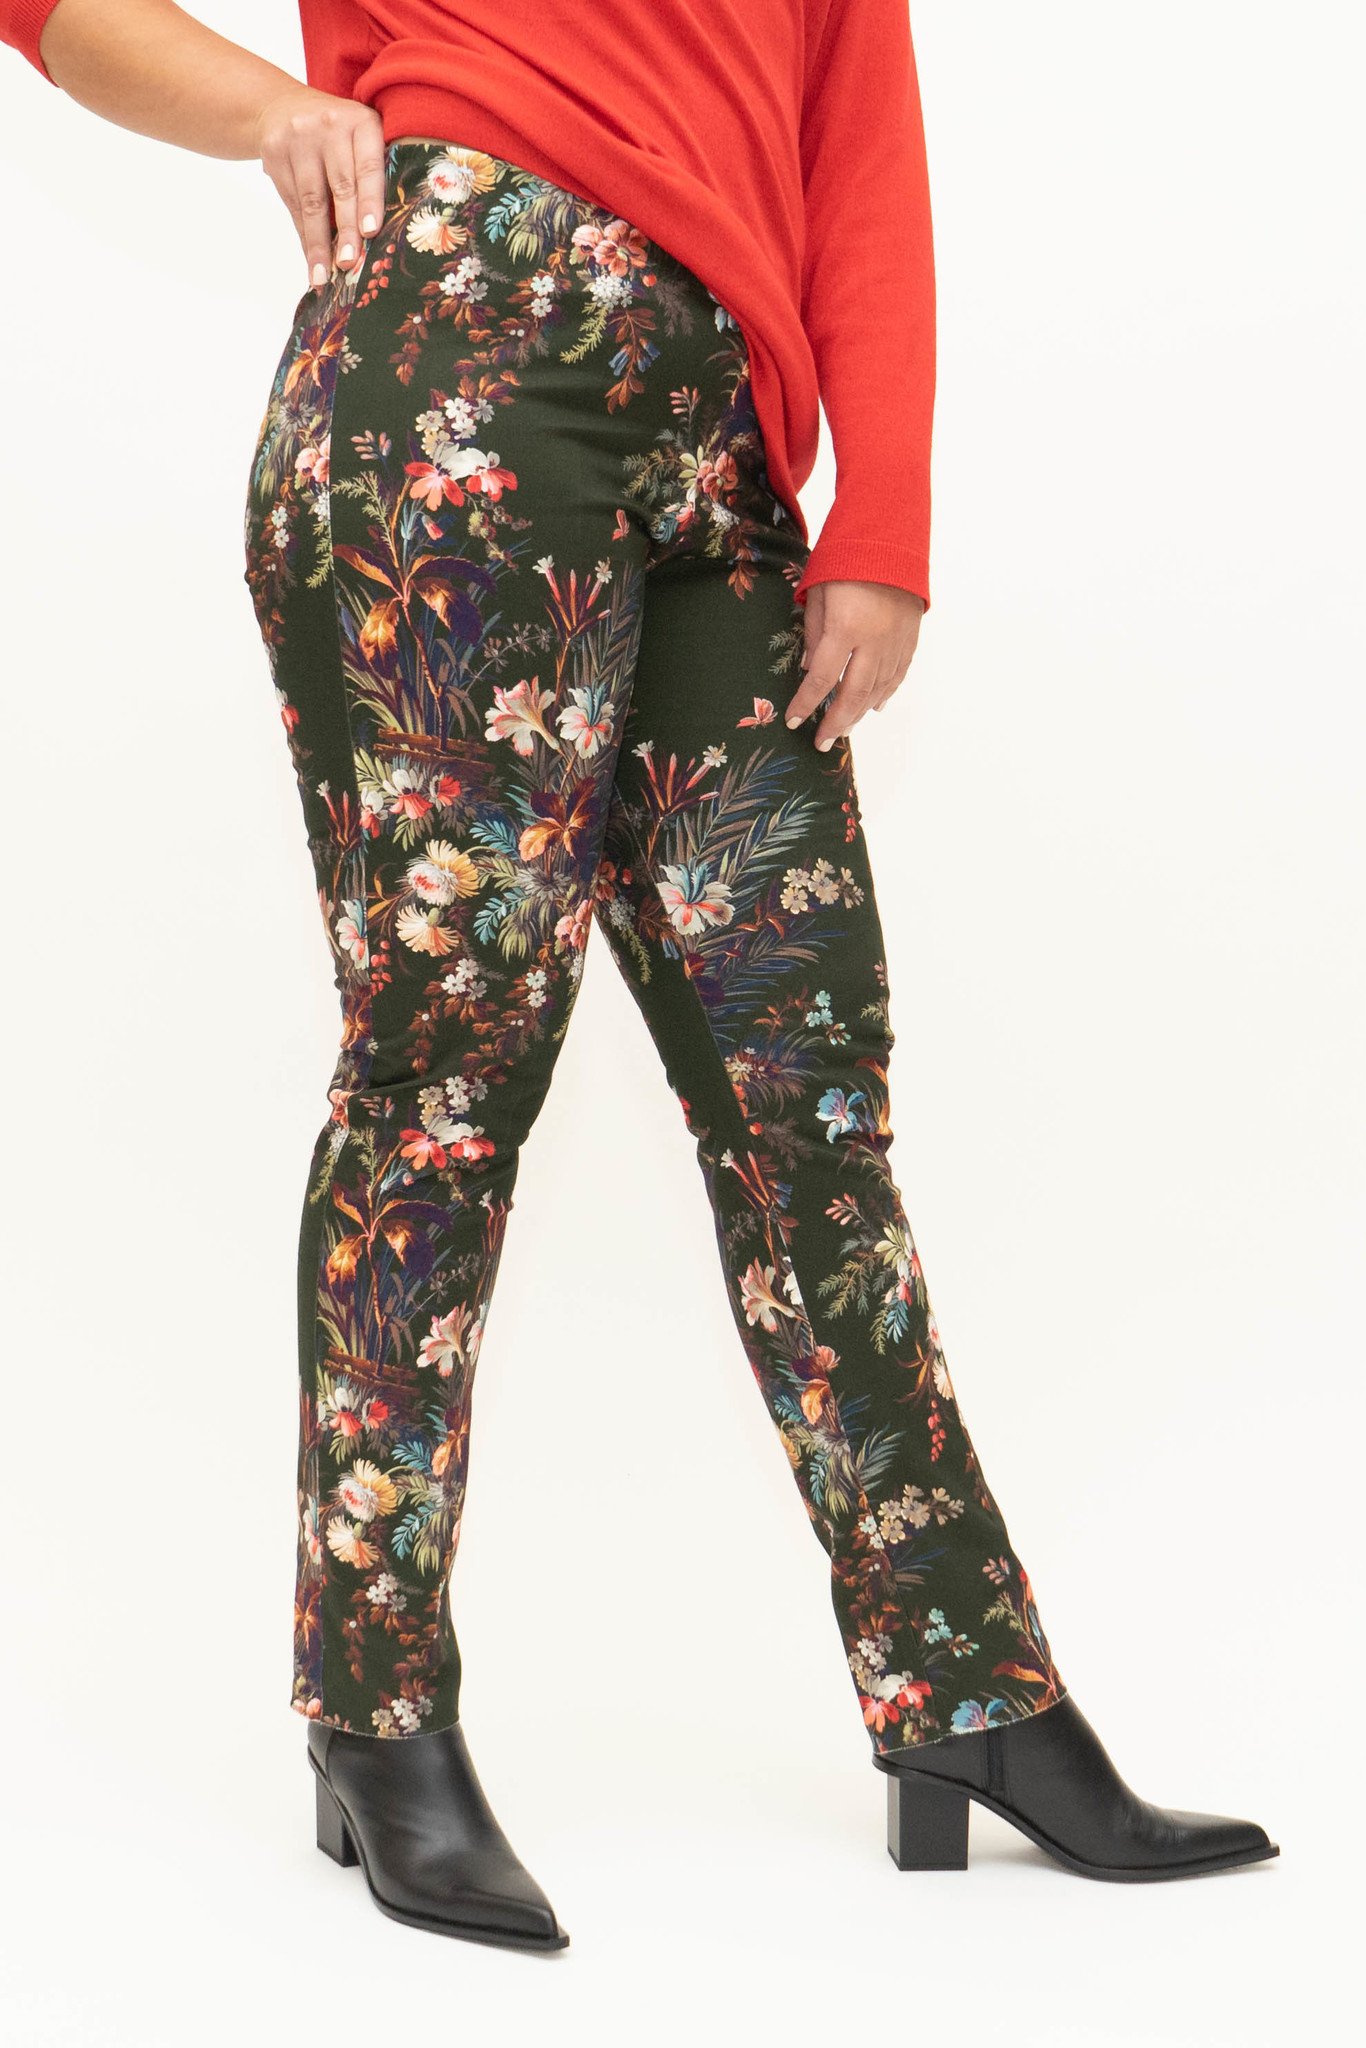 DAVINIA Trousers in printed Cotton stretch-1